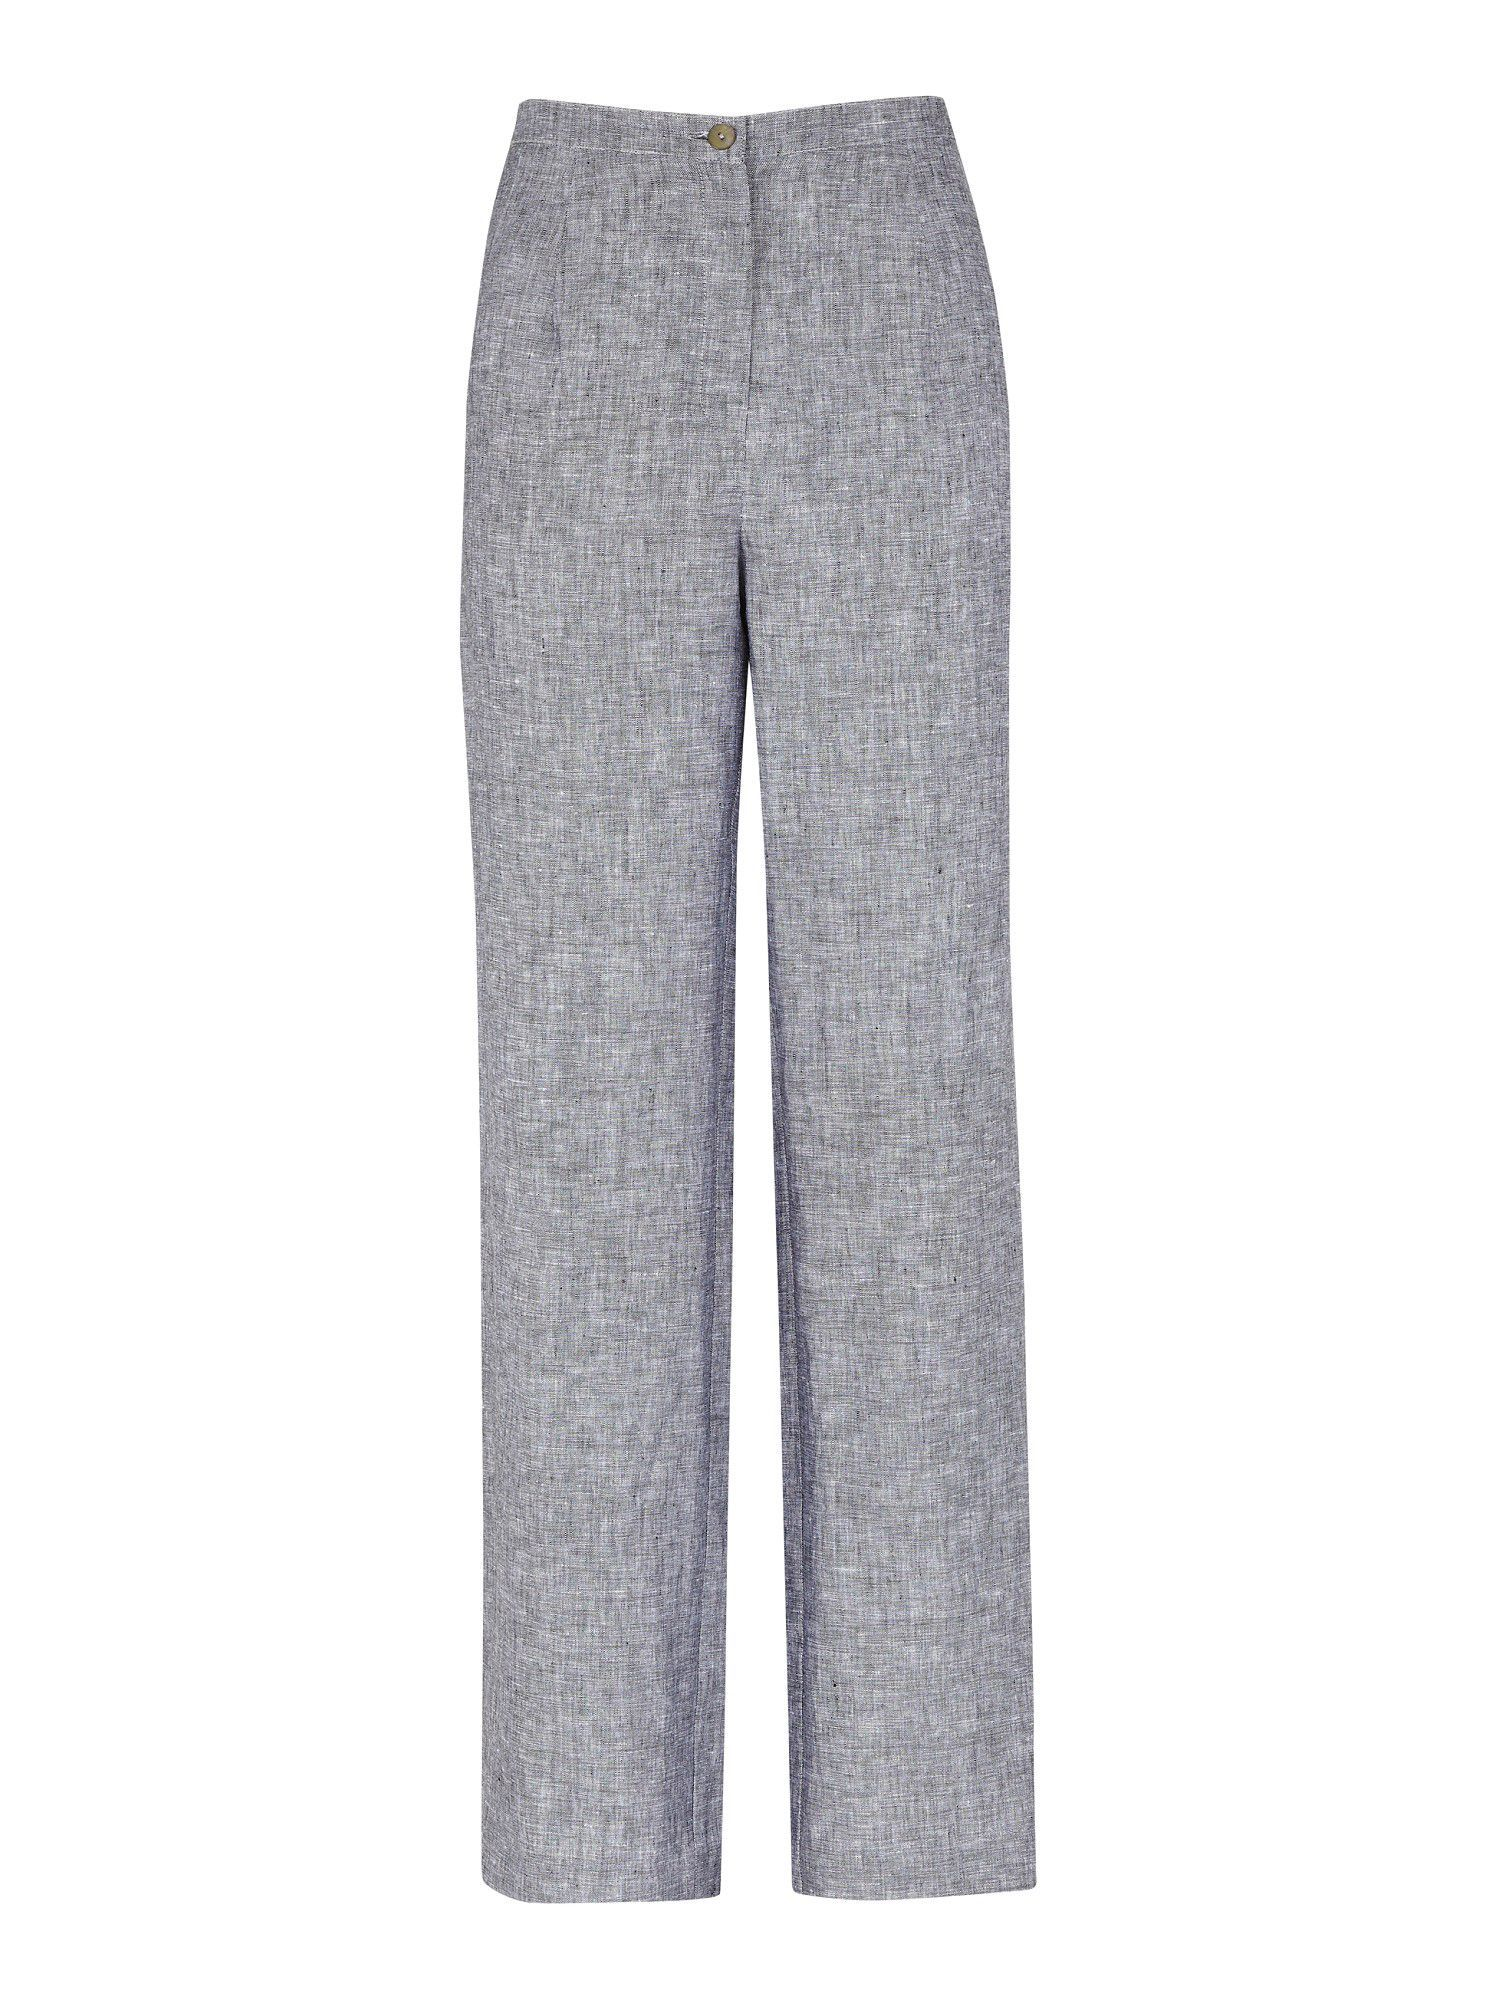 Women's Grey Melange Linen Mix Trousers, Grey - length: standard; waist detail: fitted waist; waist: mid/regular rise; predominant colour: mid grey; occasions: work; fibres: linen - 100%; material texture: corduroy; texture group: corduroy; fit: straight leg; style: standard